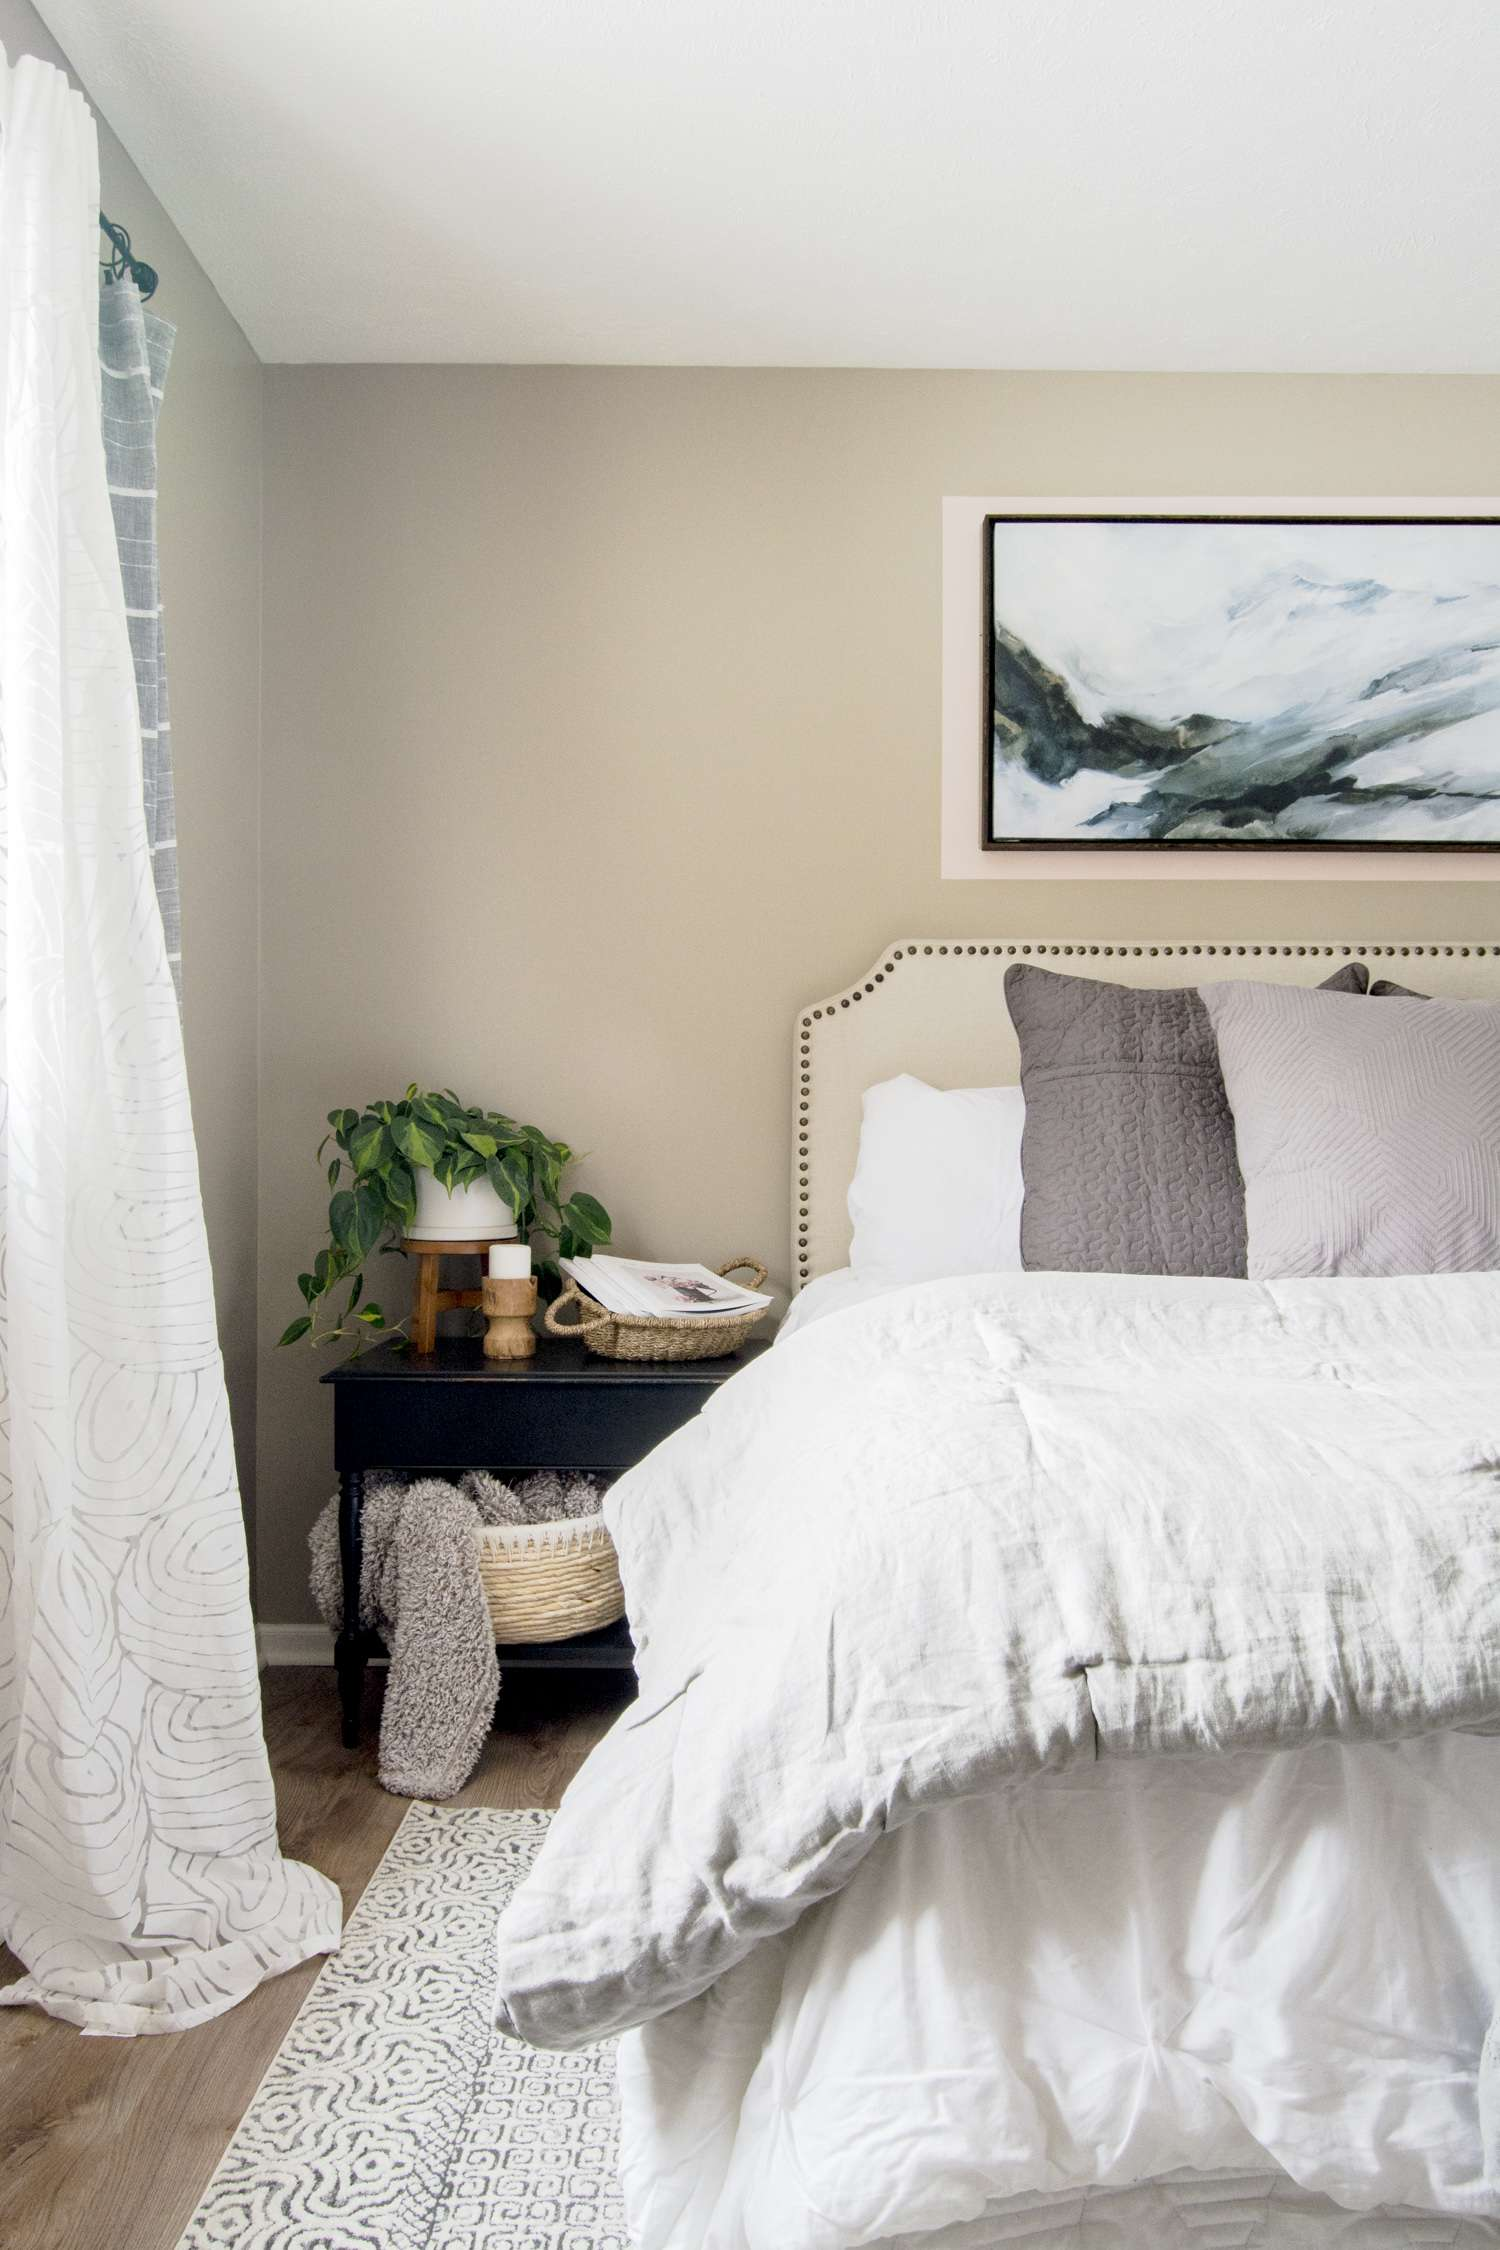 Guest bedroom decor ideas.